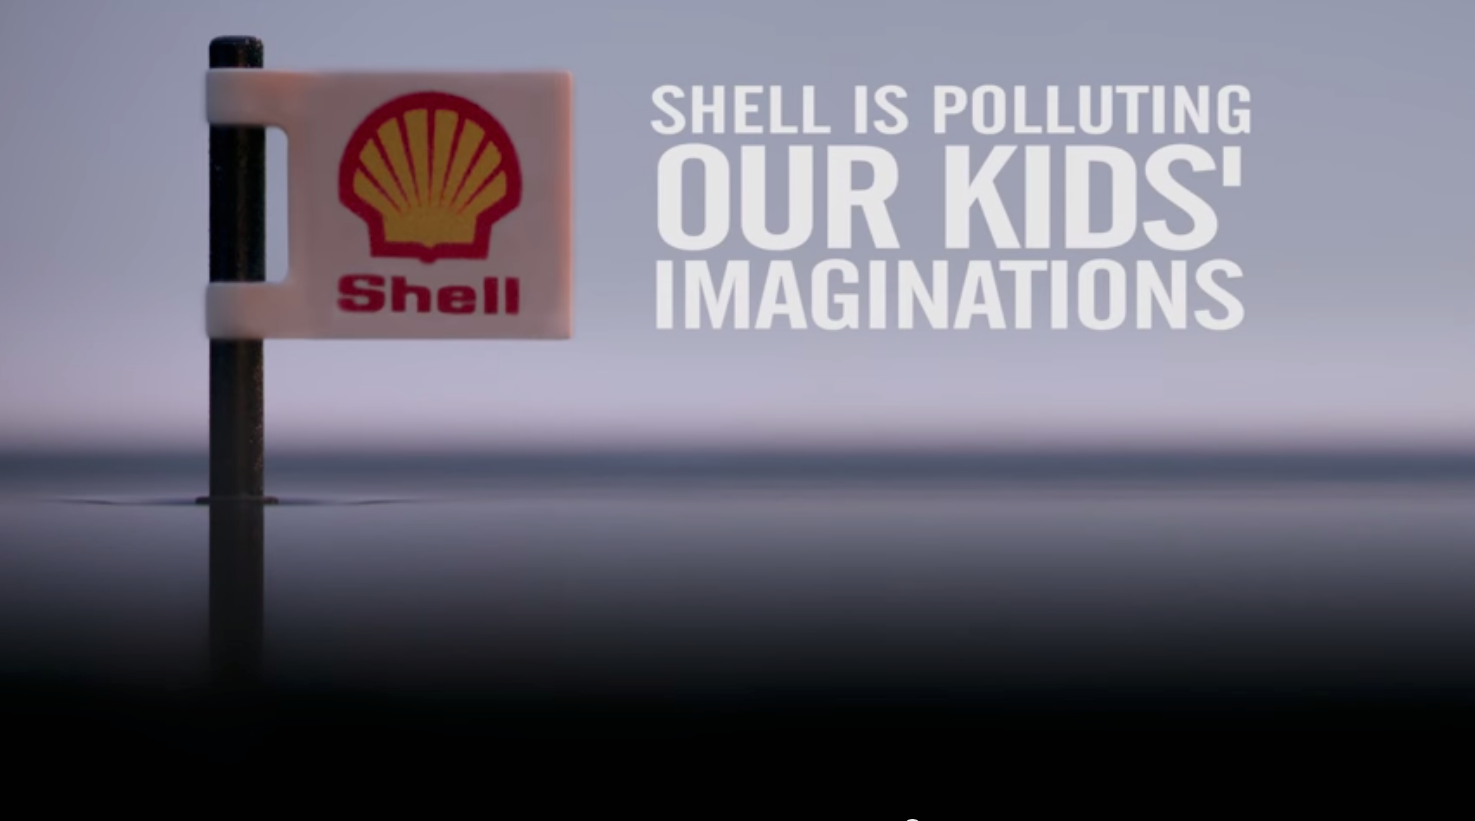 Greenpeace Takes On Shell and Lego